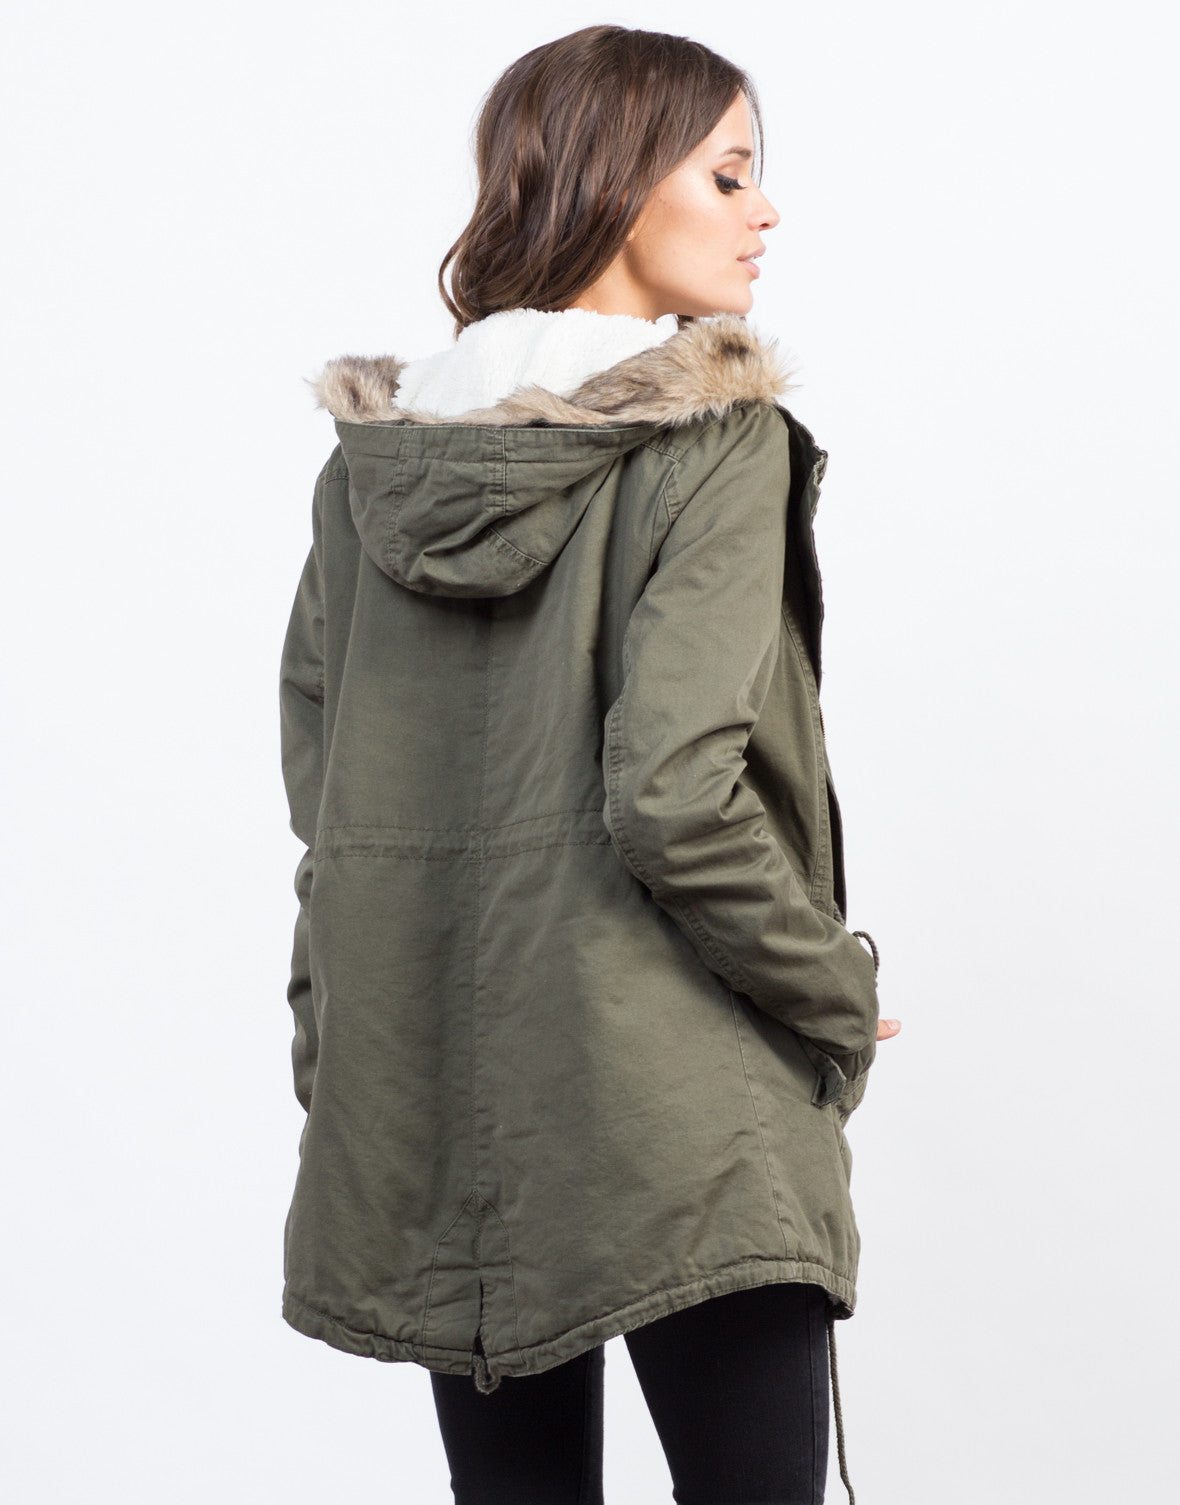 Back View of Furry Hooded Military Jacket